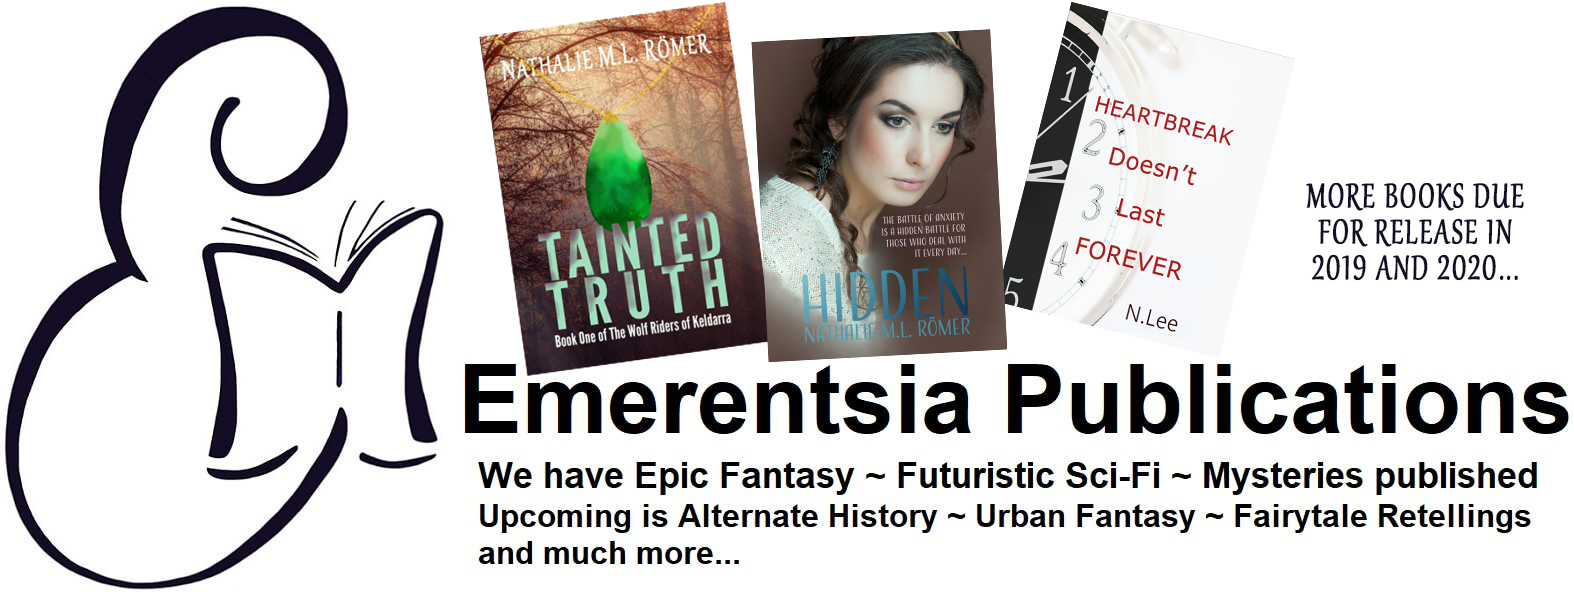 Emerentsia Publications